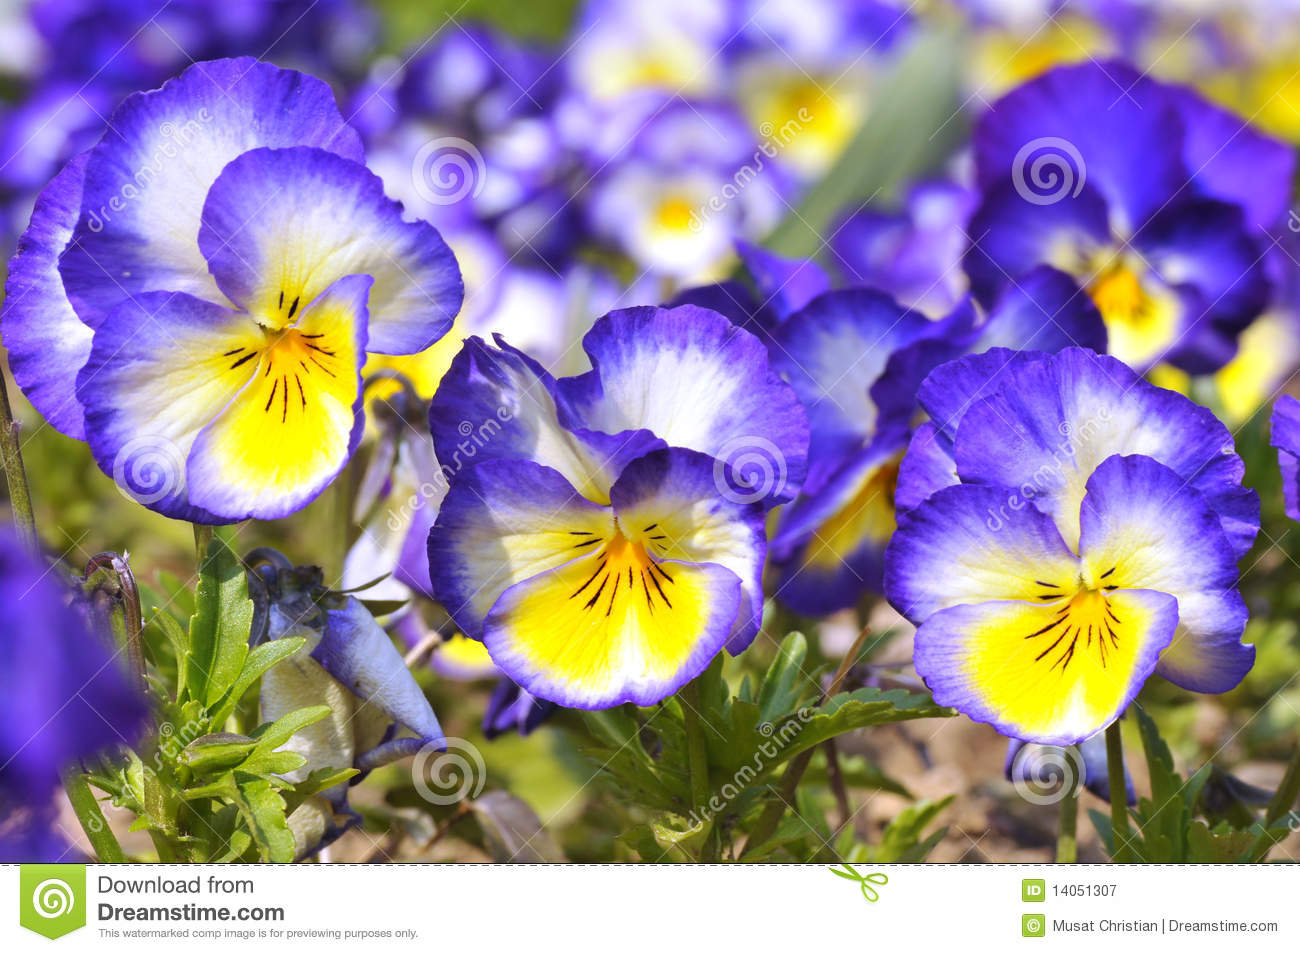 Blue and yellow flower images fresh lotus flowers blue and yellow violas flowers stock image image of horticulture mightylinksfo